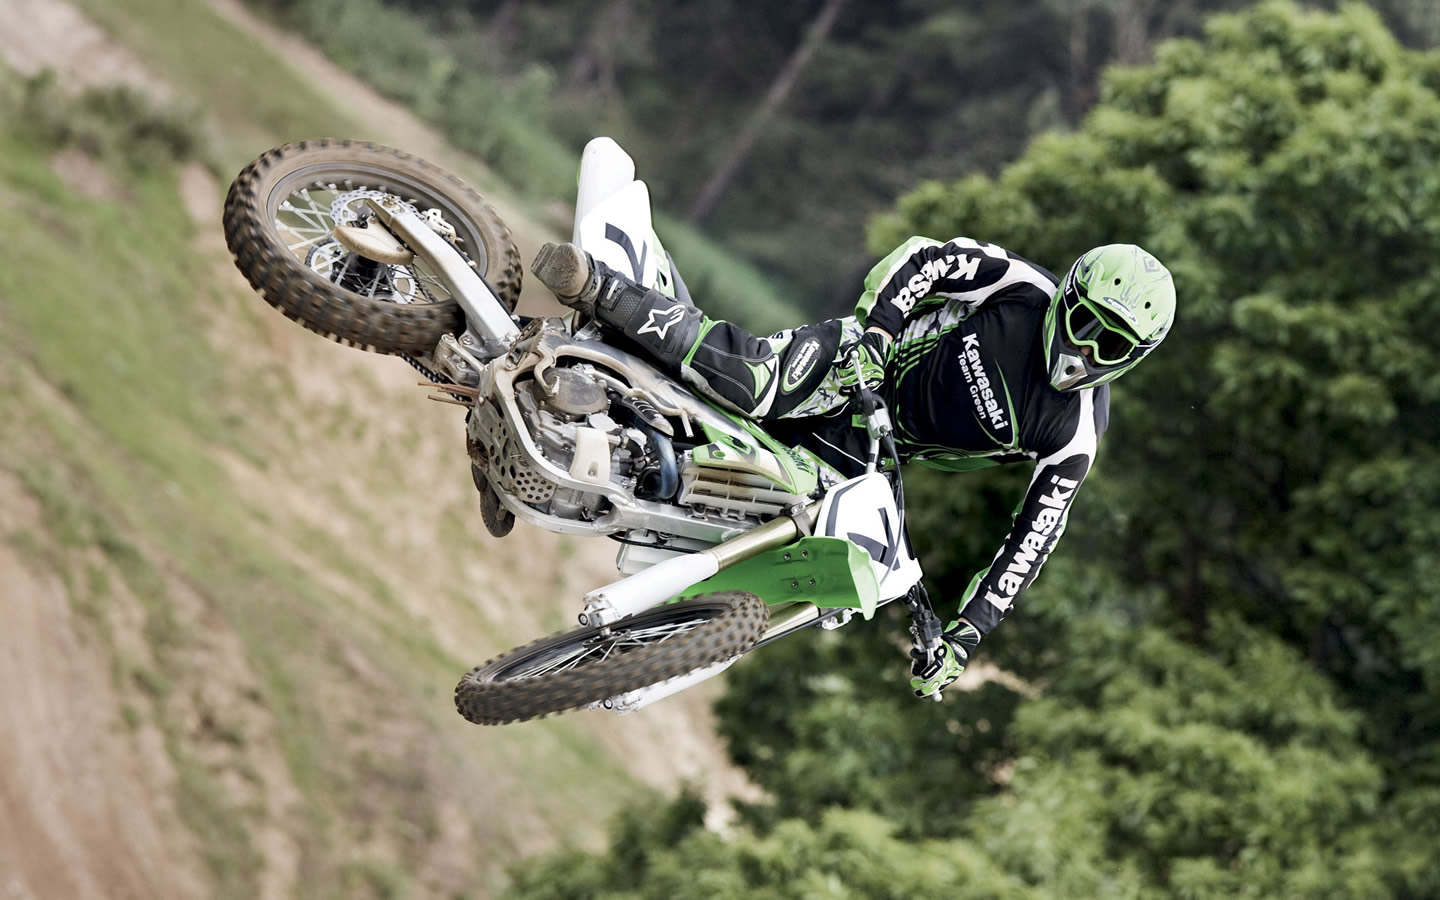 Motocross Wallpaper High Quality Wallpaper Area HD Wallpapers 1440x900